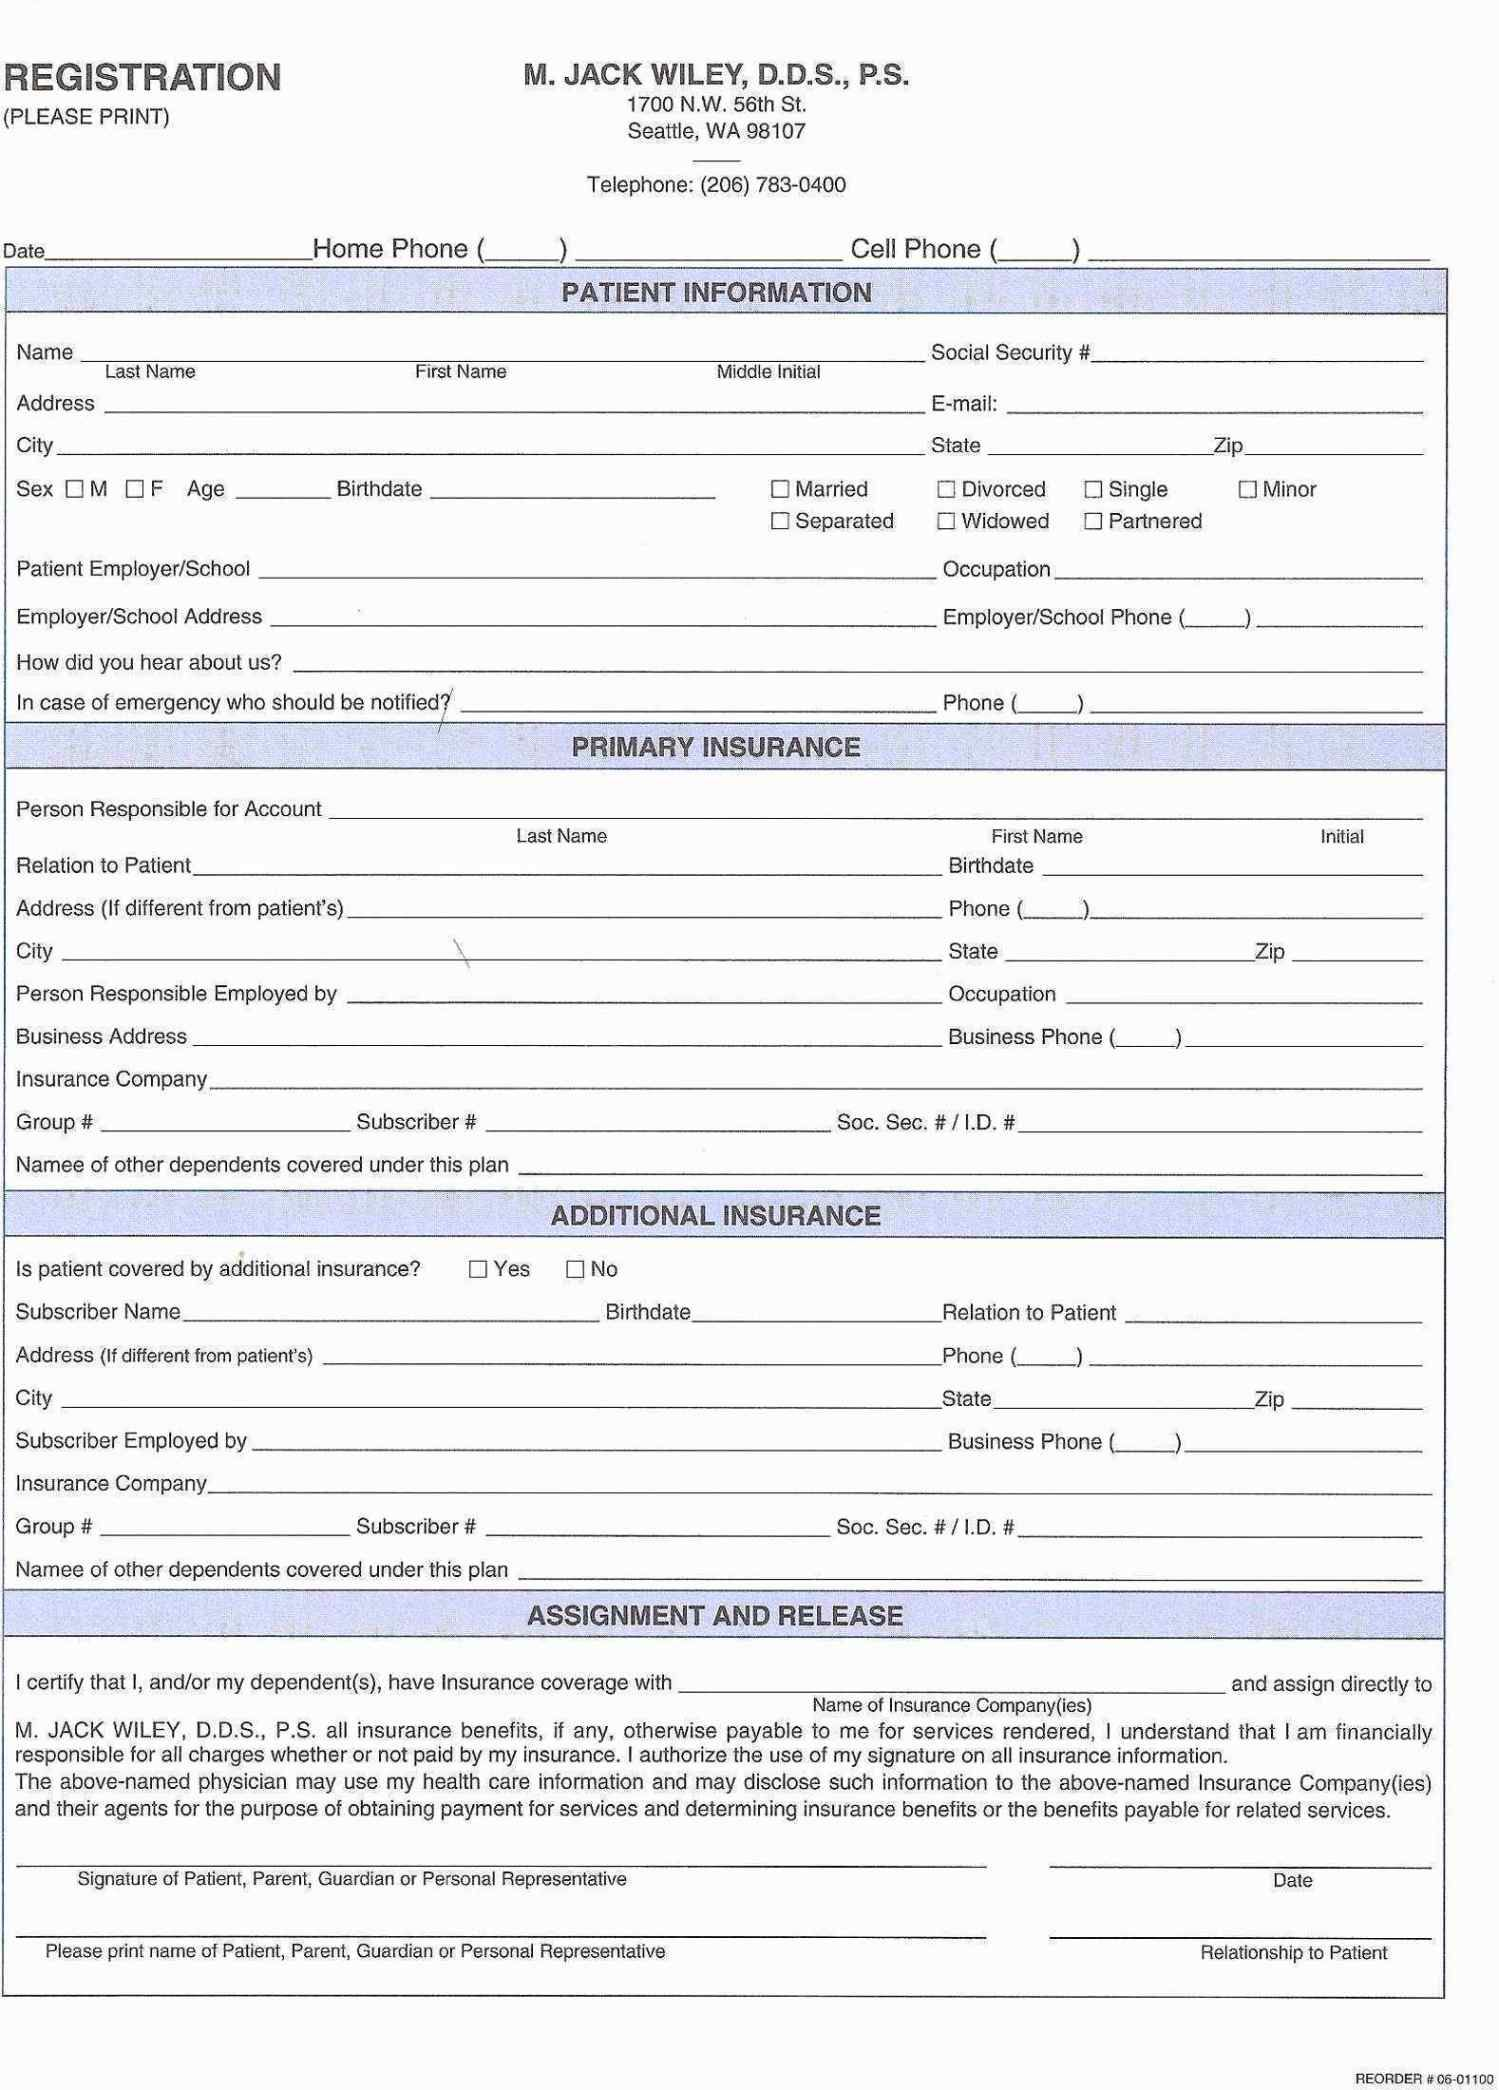 Hospital Discharge Papers Template Awesome 50 New Hospital